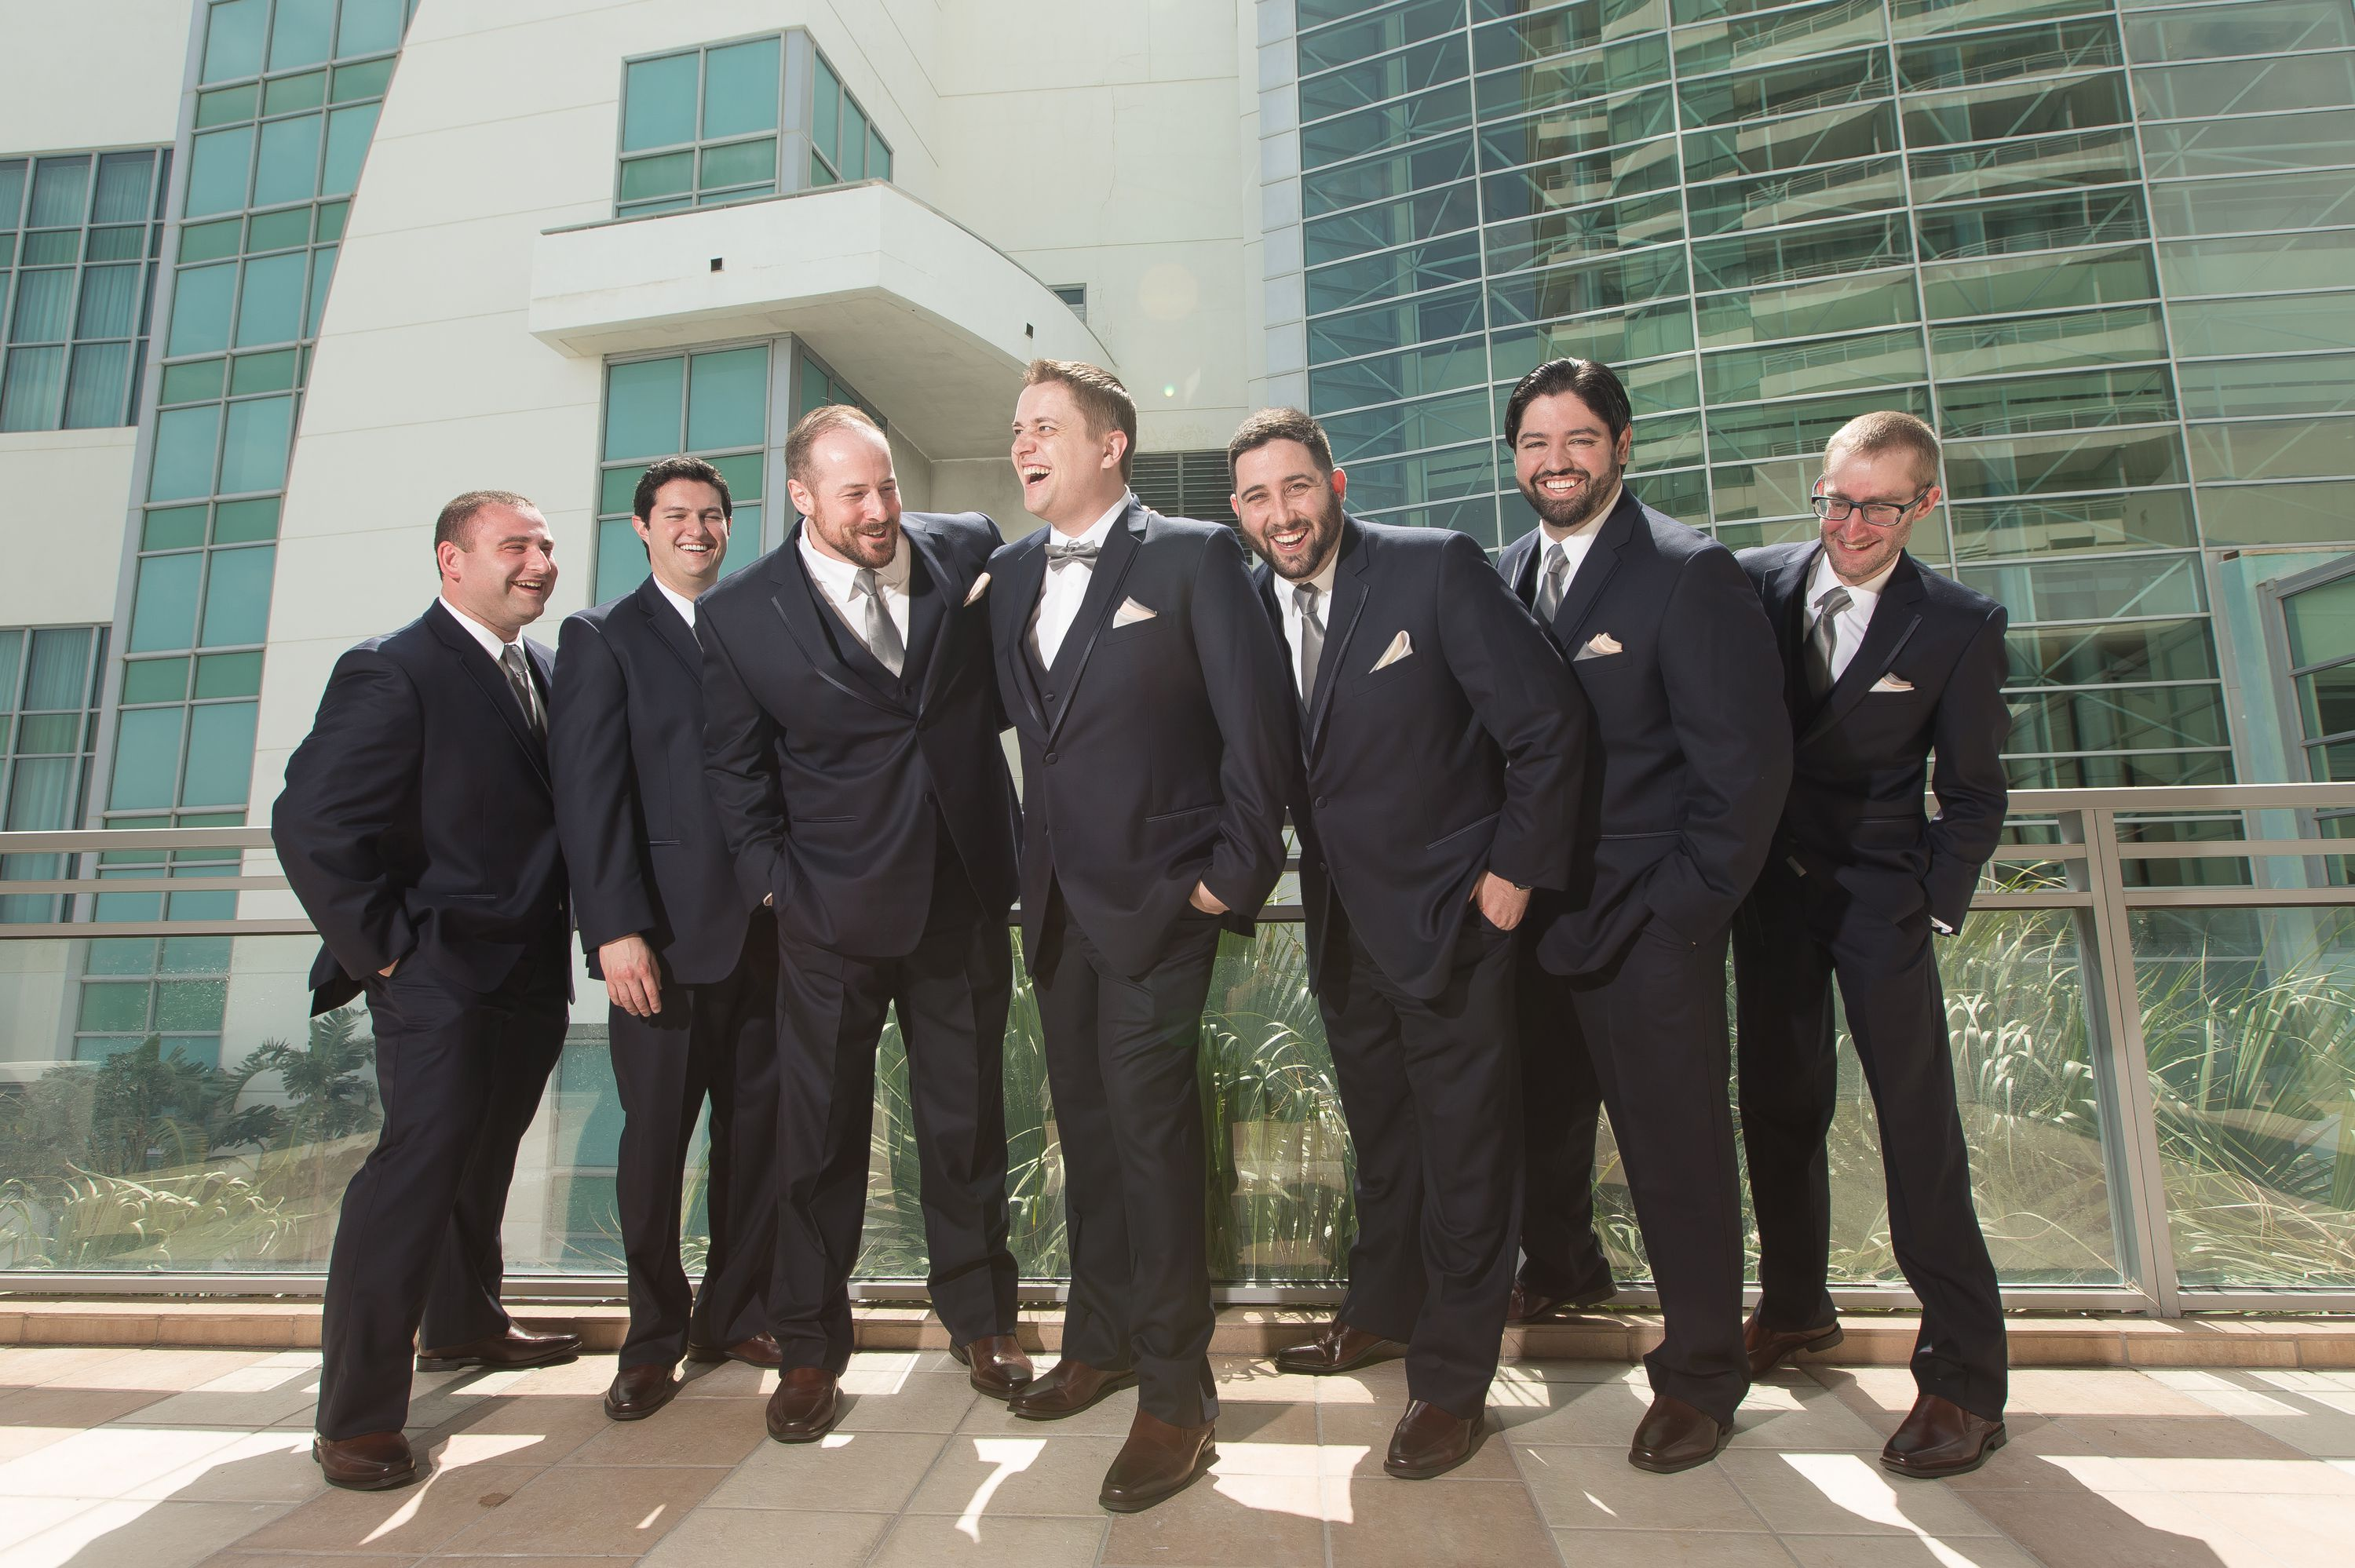 Styled shot of all the groomsmen at Diplomat Beach Resort Wedding